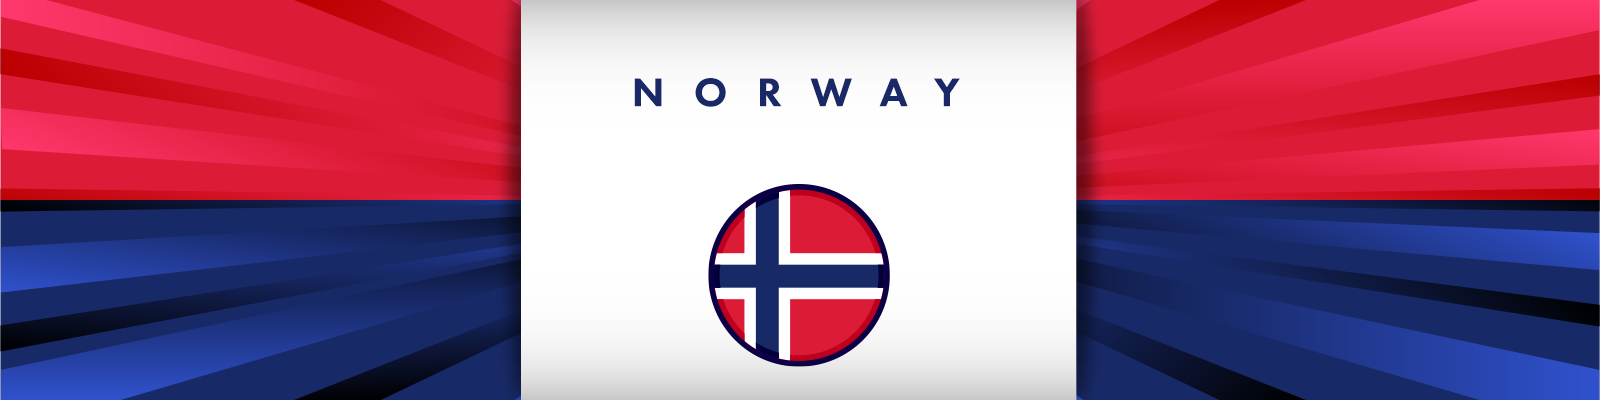 website developers norway